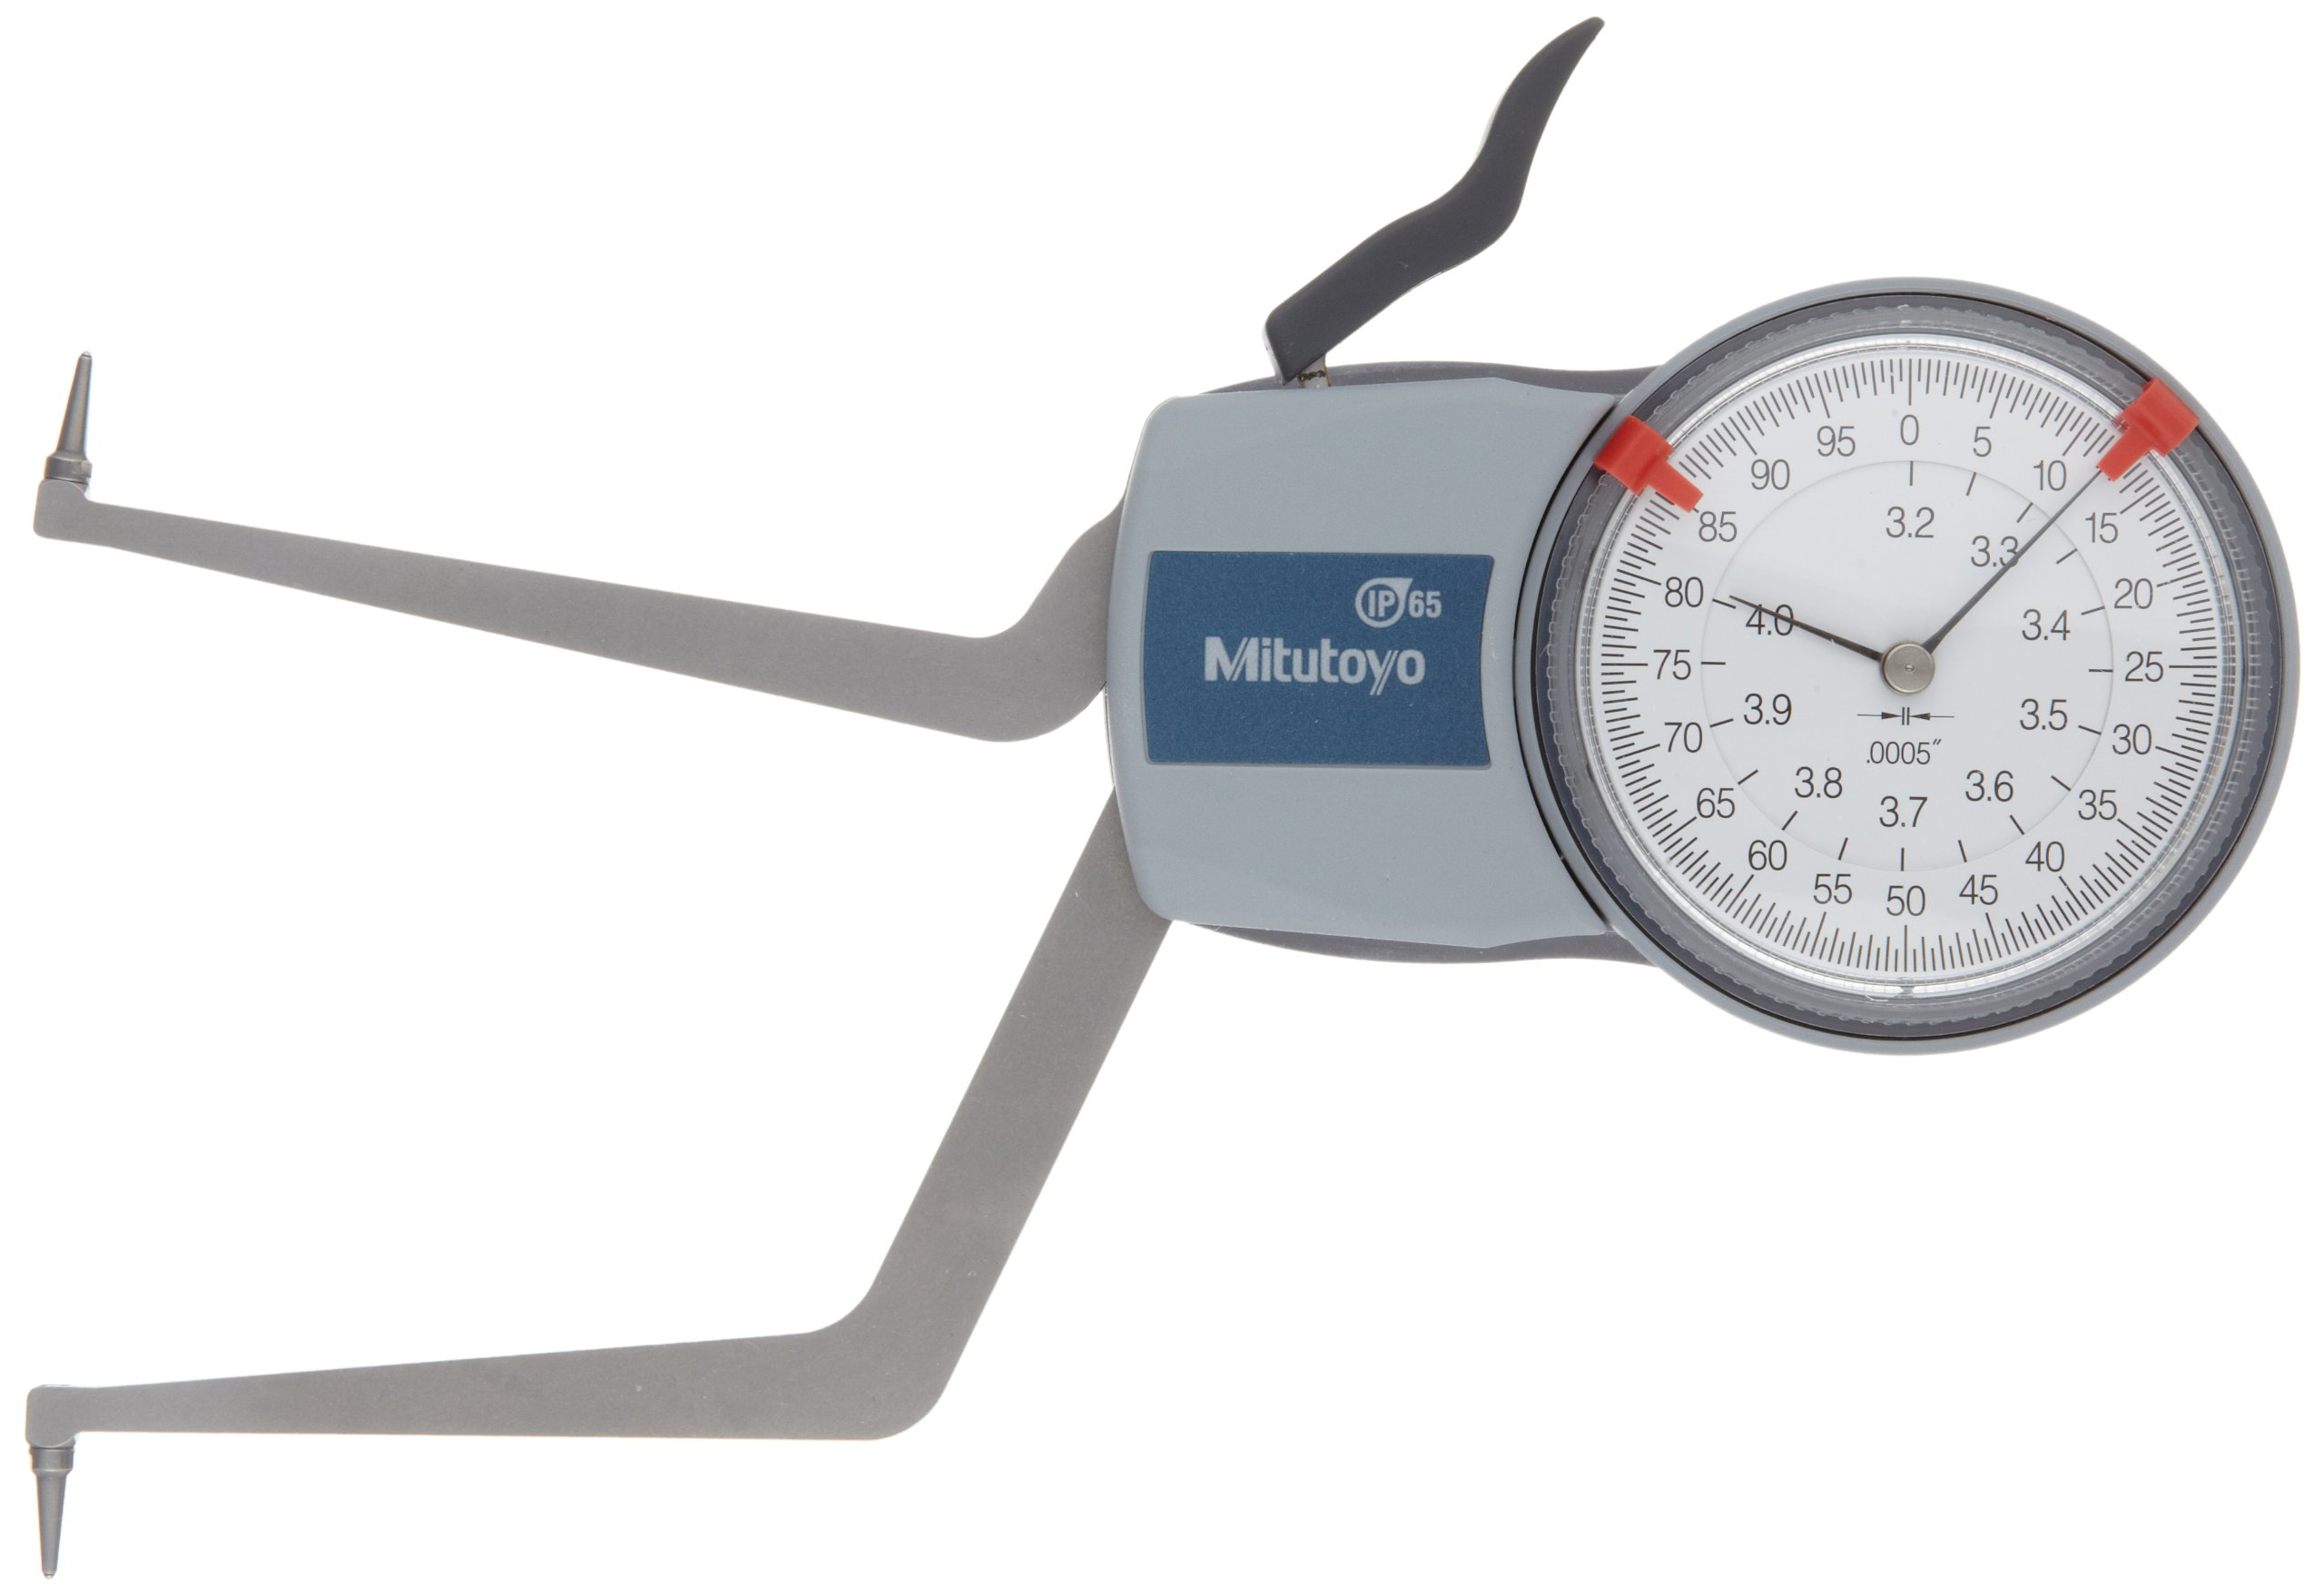 Mitutoyo 209-355 Caliper Gauge, Pointed Jaw, White Face, 1.2-2'' Range, +/-0.0015'' Accuracy, 0.0005'' Resolution, Meets IP65 Specifications by Mitutoyo